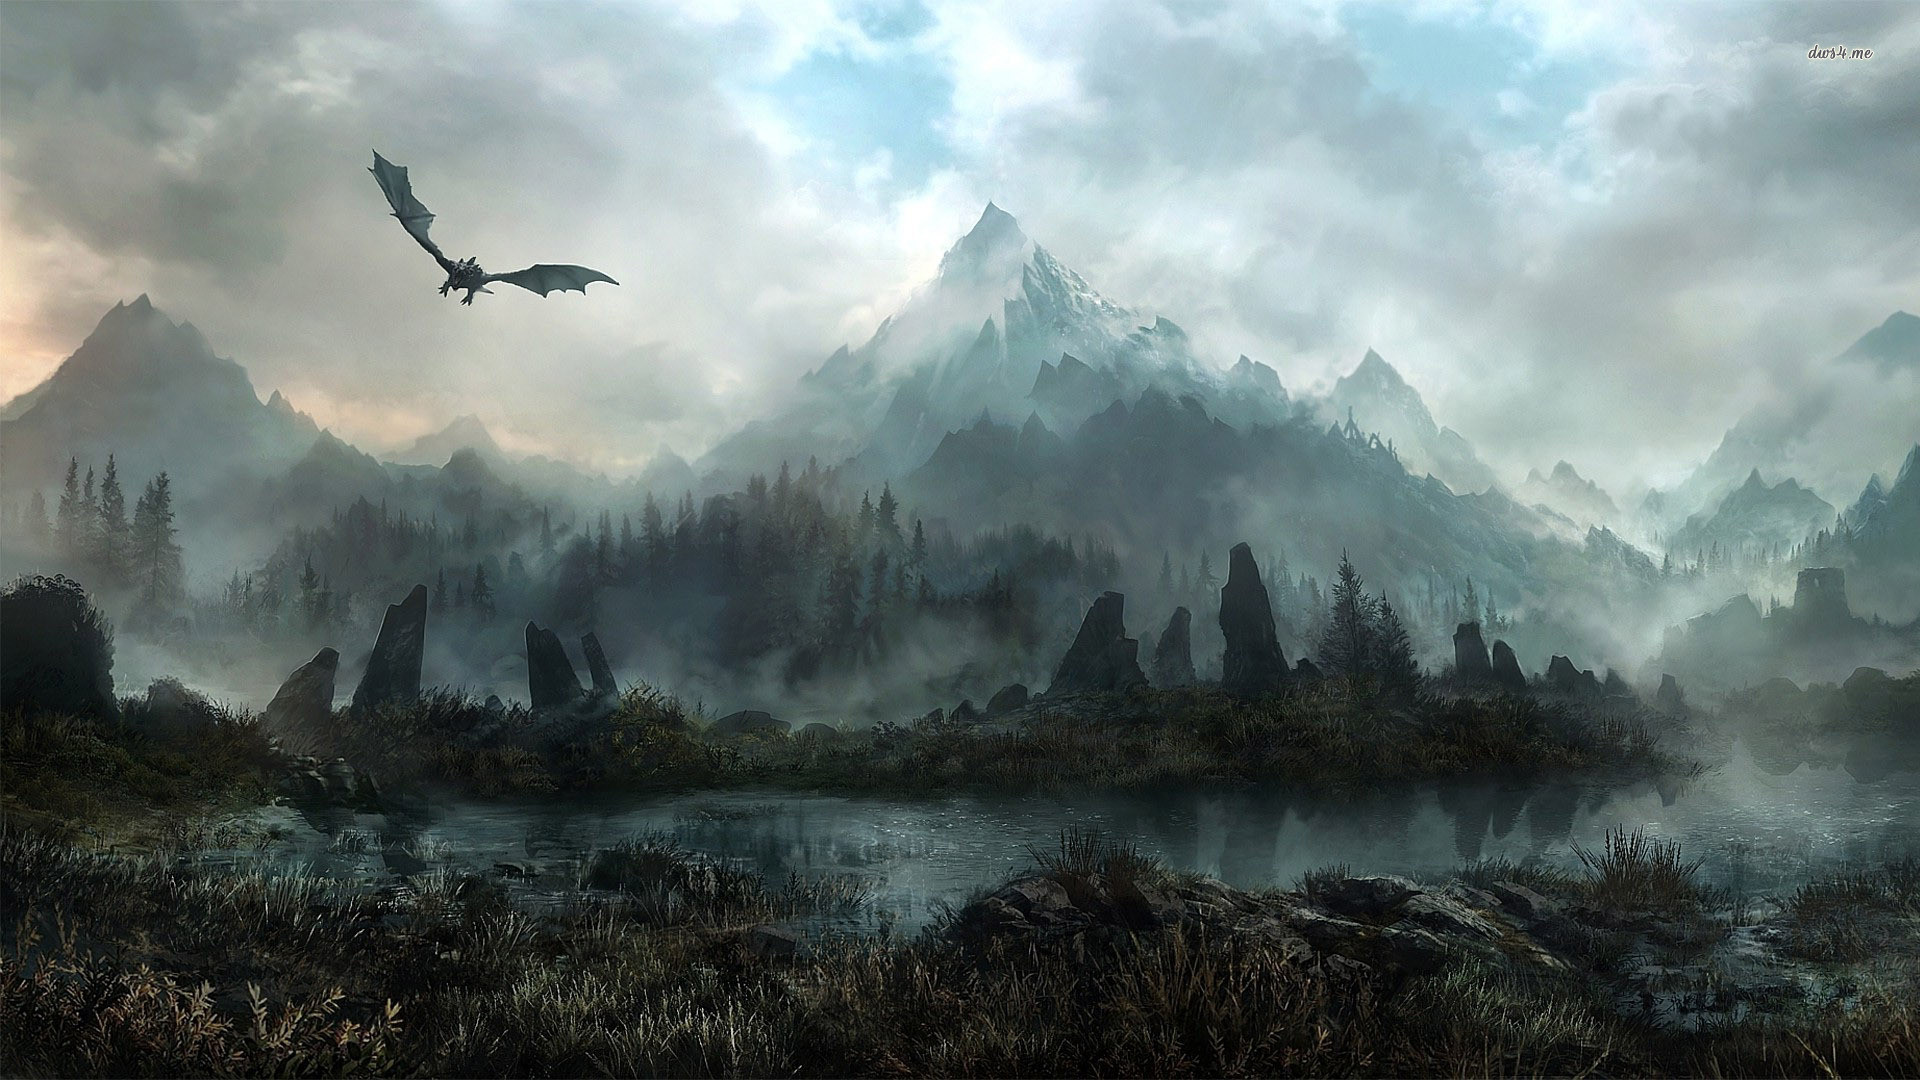 Skyrim desktop wallpaper 72 images - Dragon backgrounds 1920x1080 ...